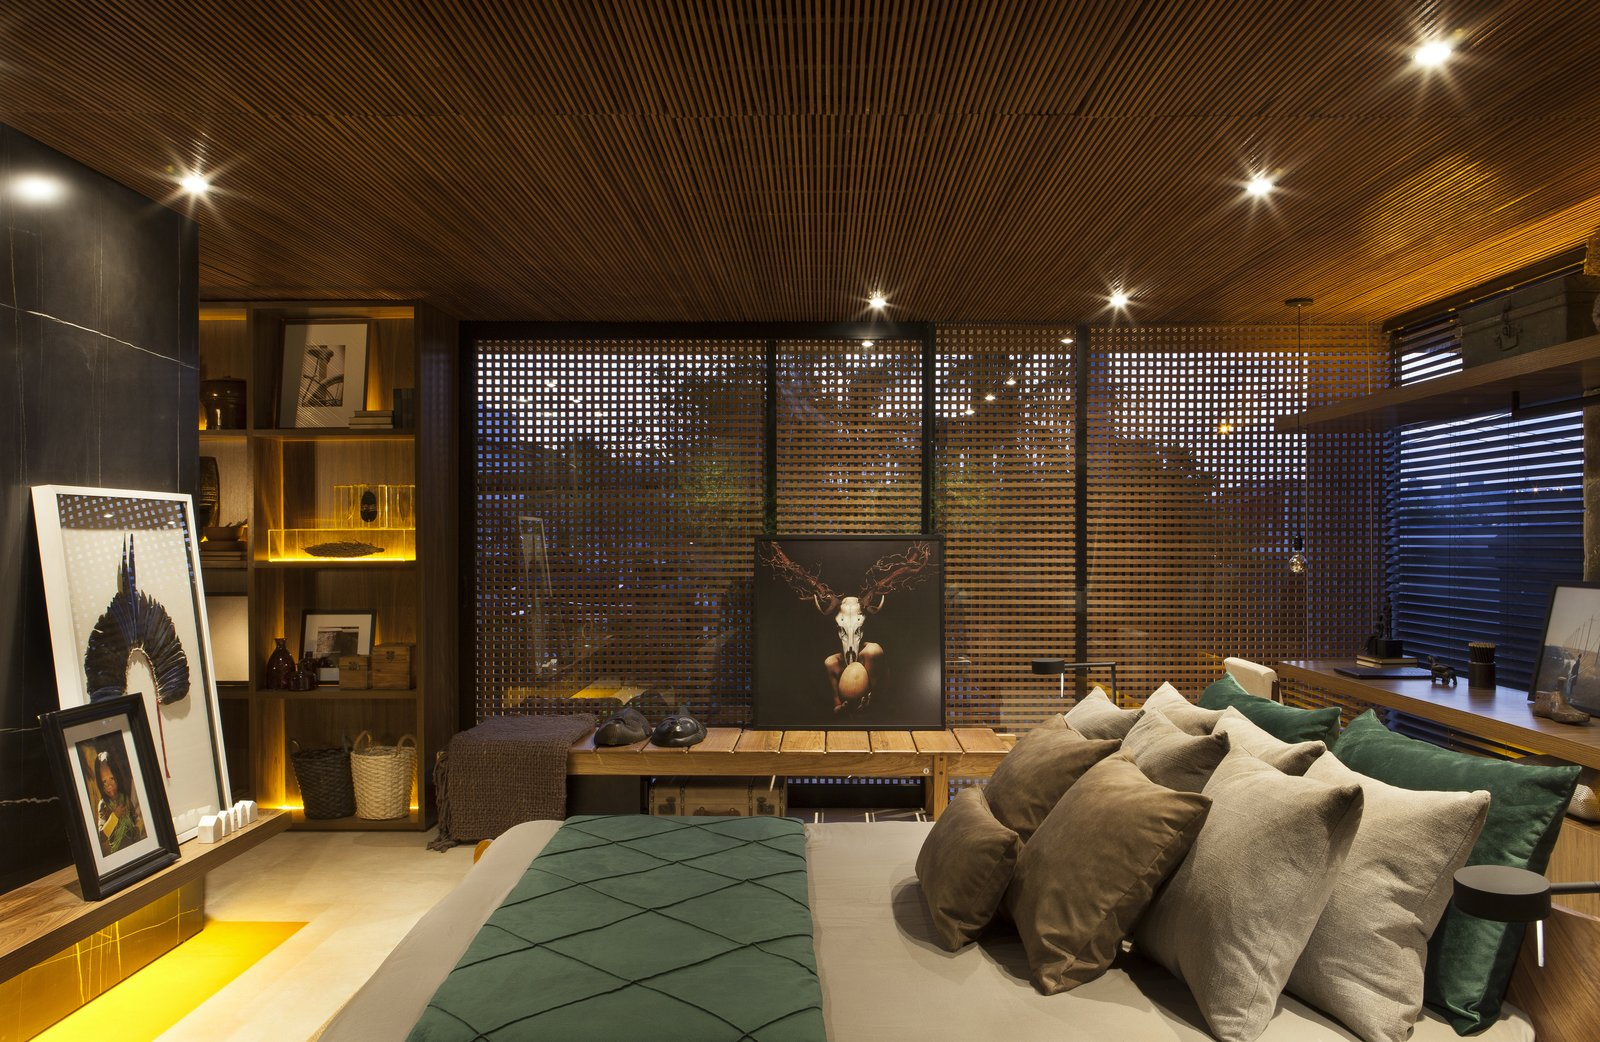 Bedroom, Bed, Ceiling Lighting, Recessed Lighting, Bench, Storage, and Shelves Seamlessly connected to the living room with no doors or dividers, the moody and luxe master bedroom is punctuated by collected art.  Photo 8 of 14 in An Incredible Brazilian Home That Celebrates Art, Travel, and Nature